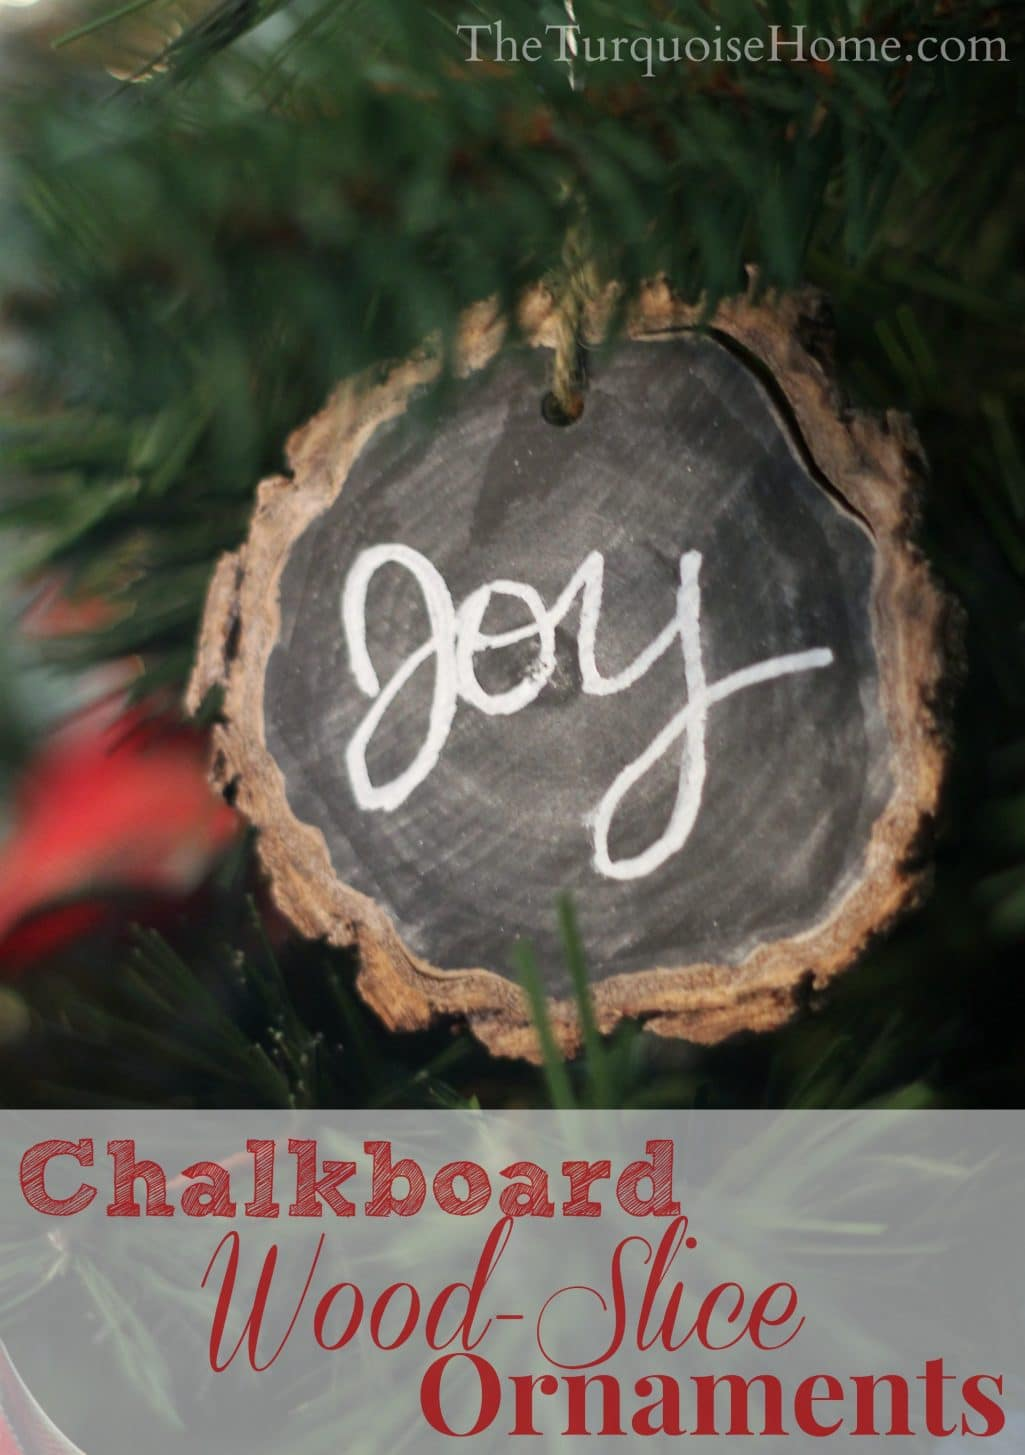 Chalkboard Wood-Slice Ornaments